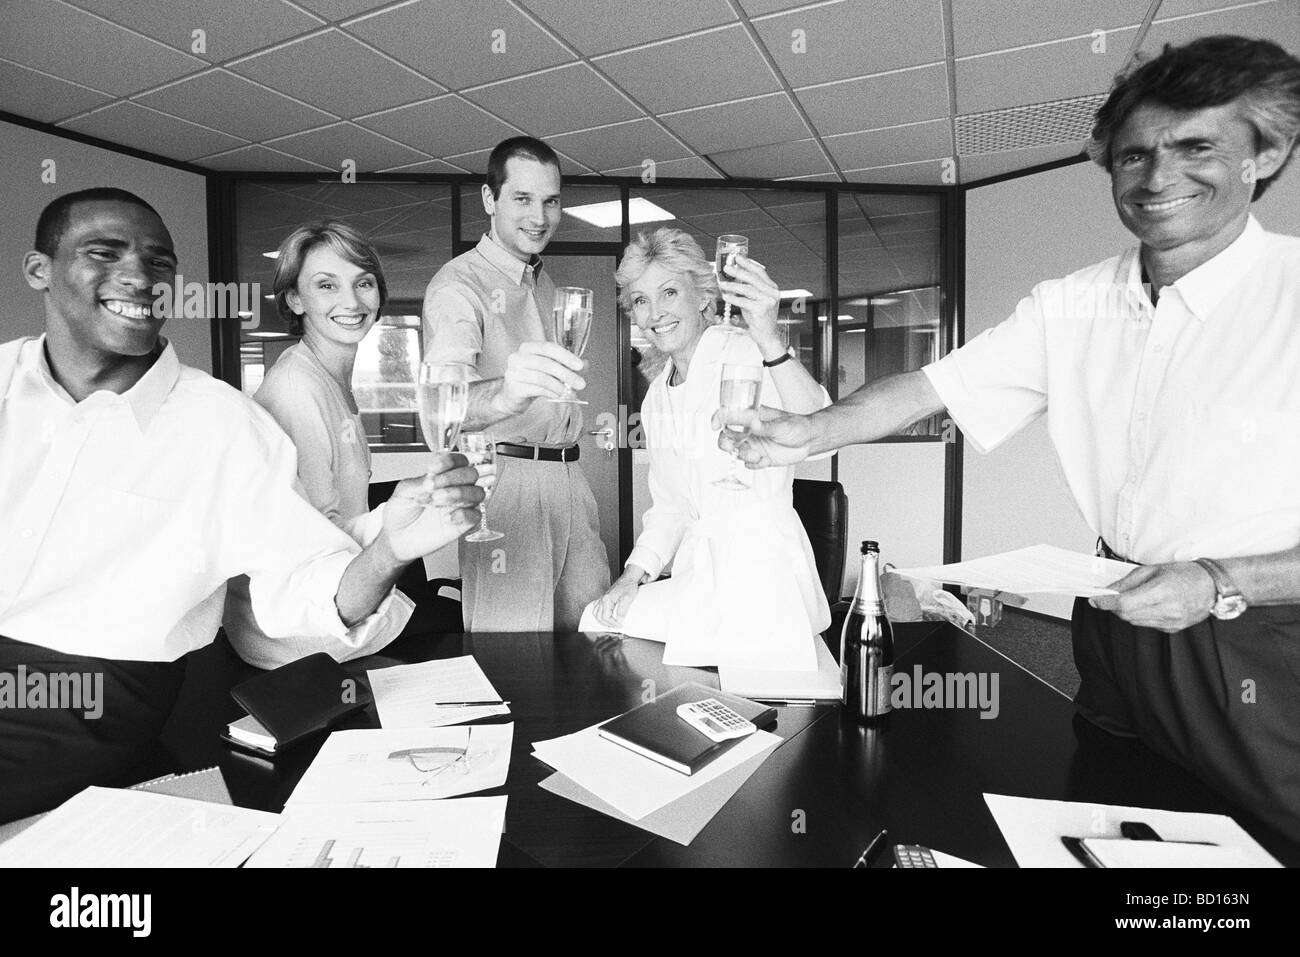 Business associates celebrating with champagne in office - Stock Image